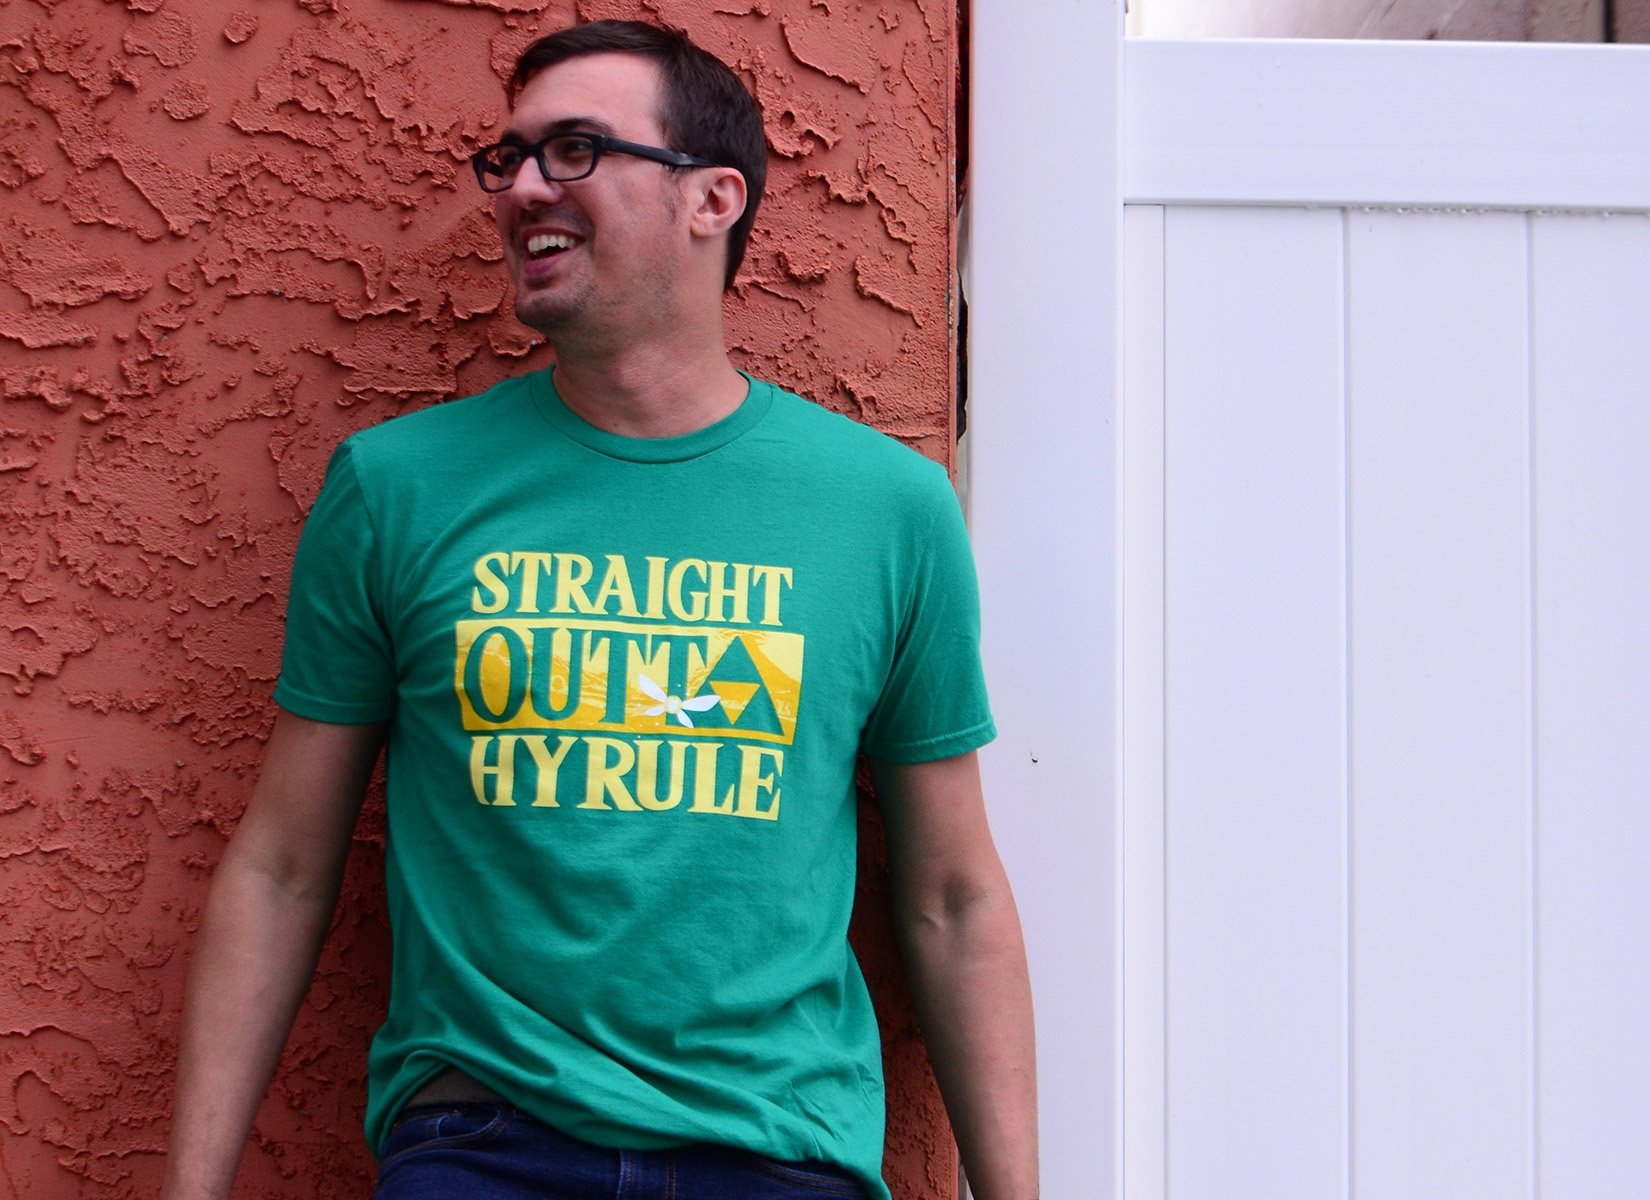 Straight Outta Hyrule on Mens T-Shirt